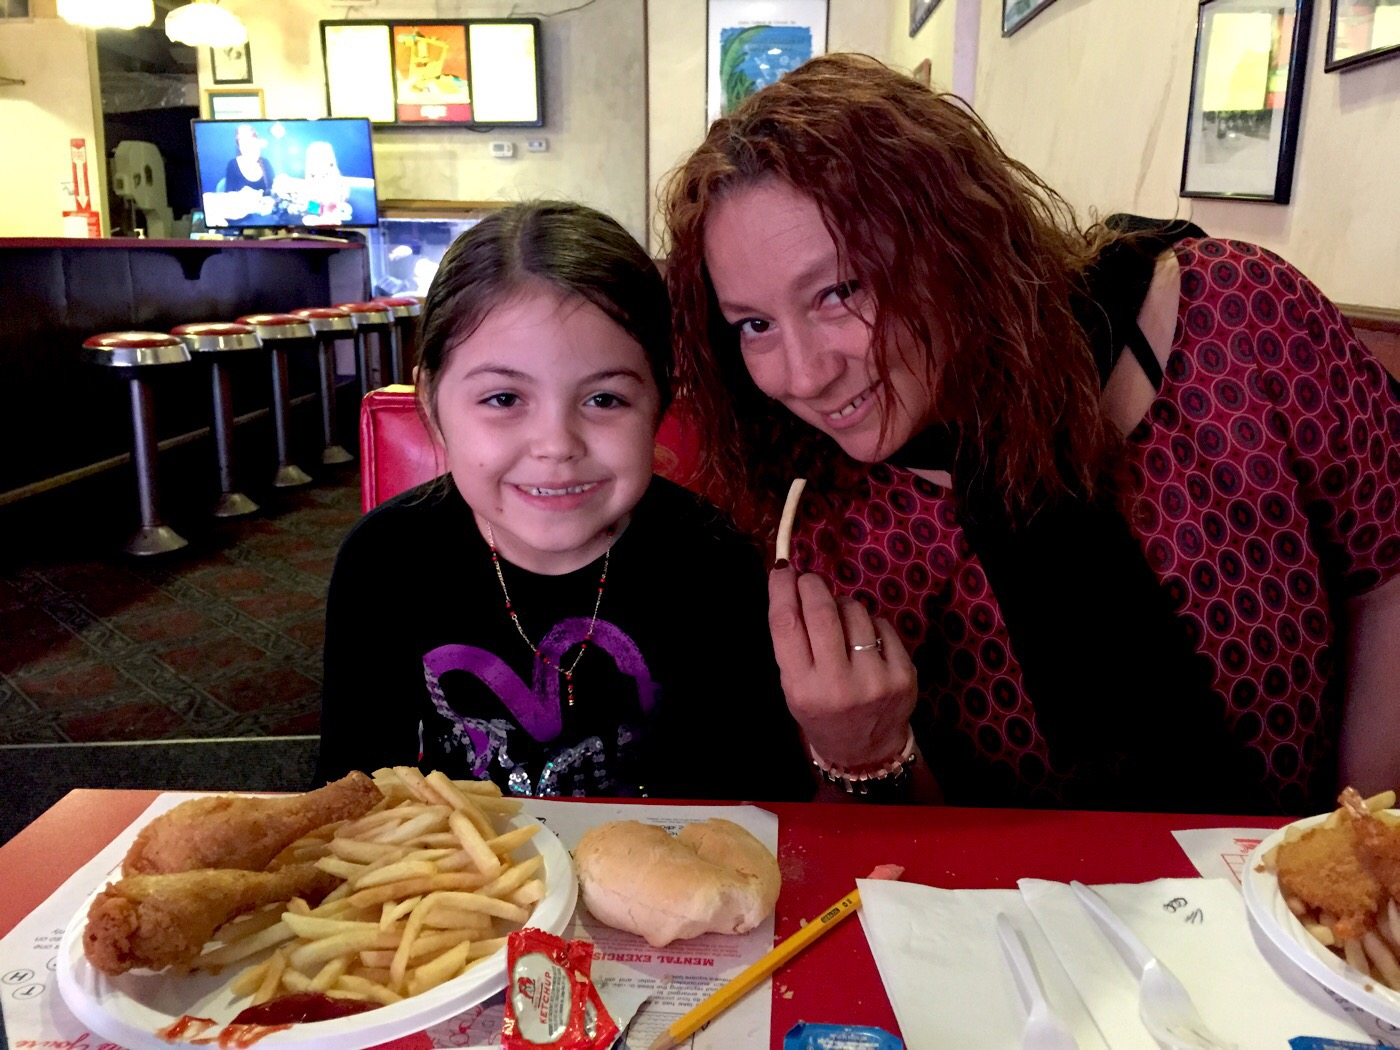 Jazlynn and mom at restaurant eating fries